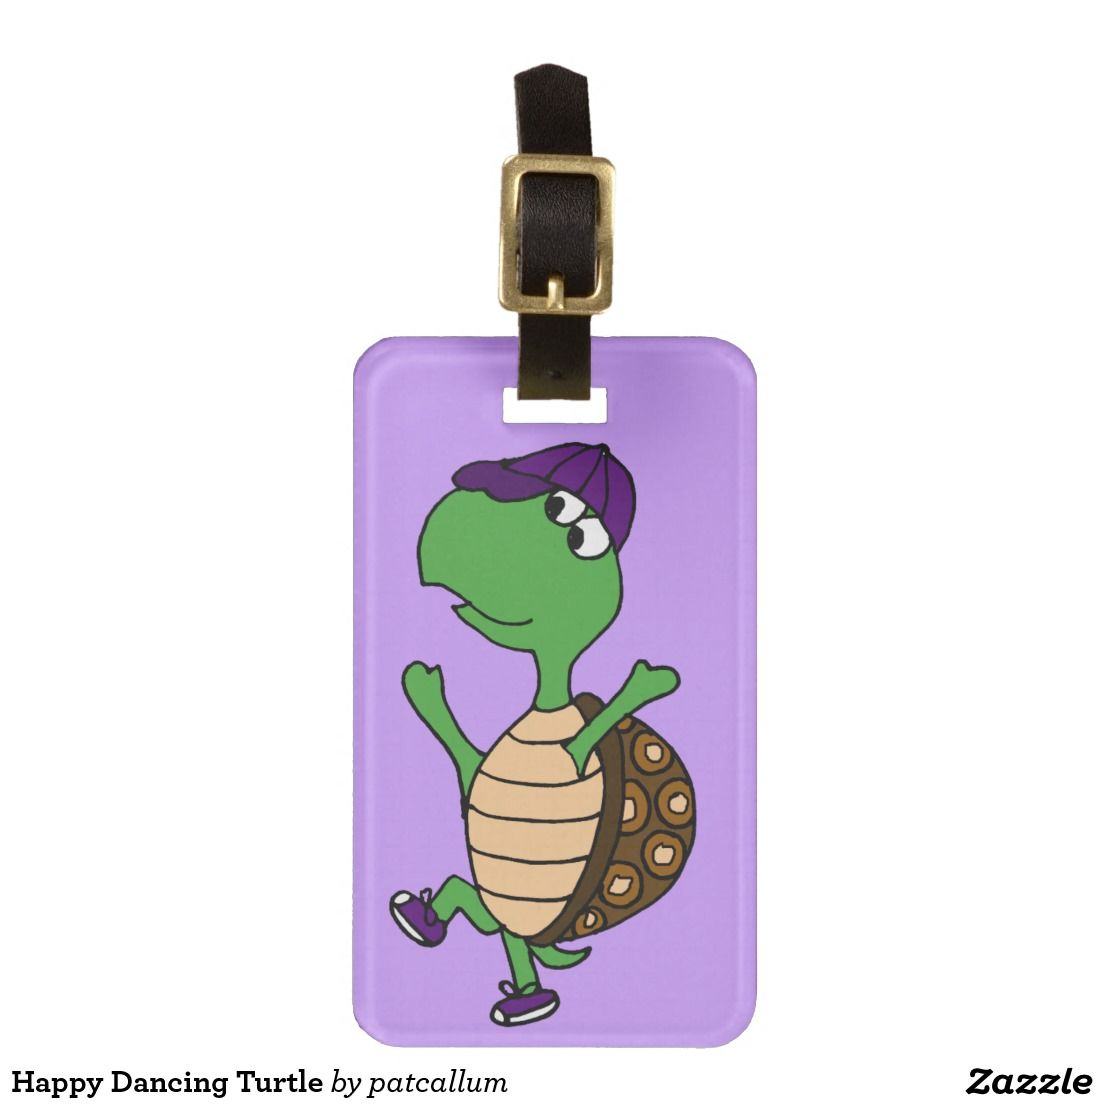 Happy Dancing Turtle Luggage Tags Bag Tags Luggage Tags Funny Luggage Tags